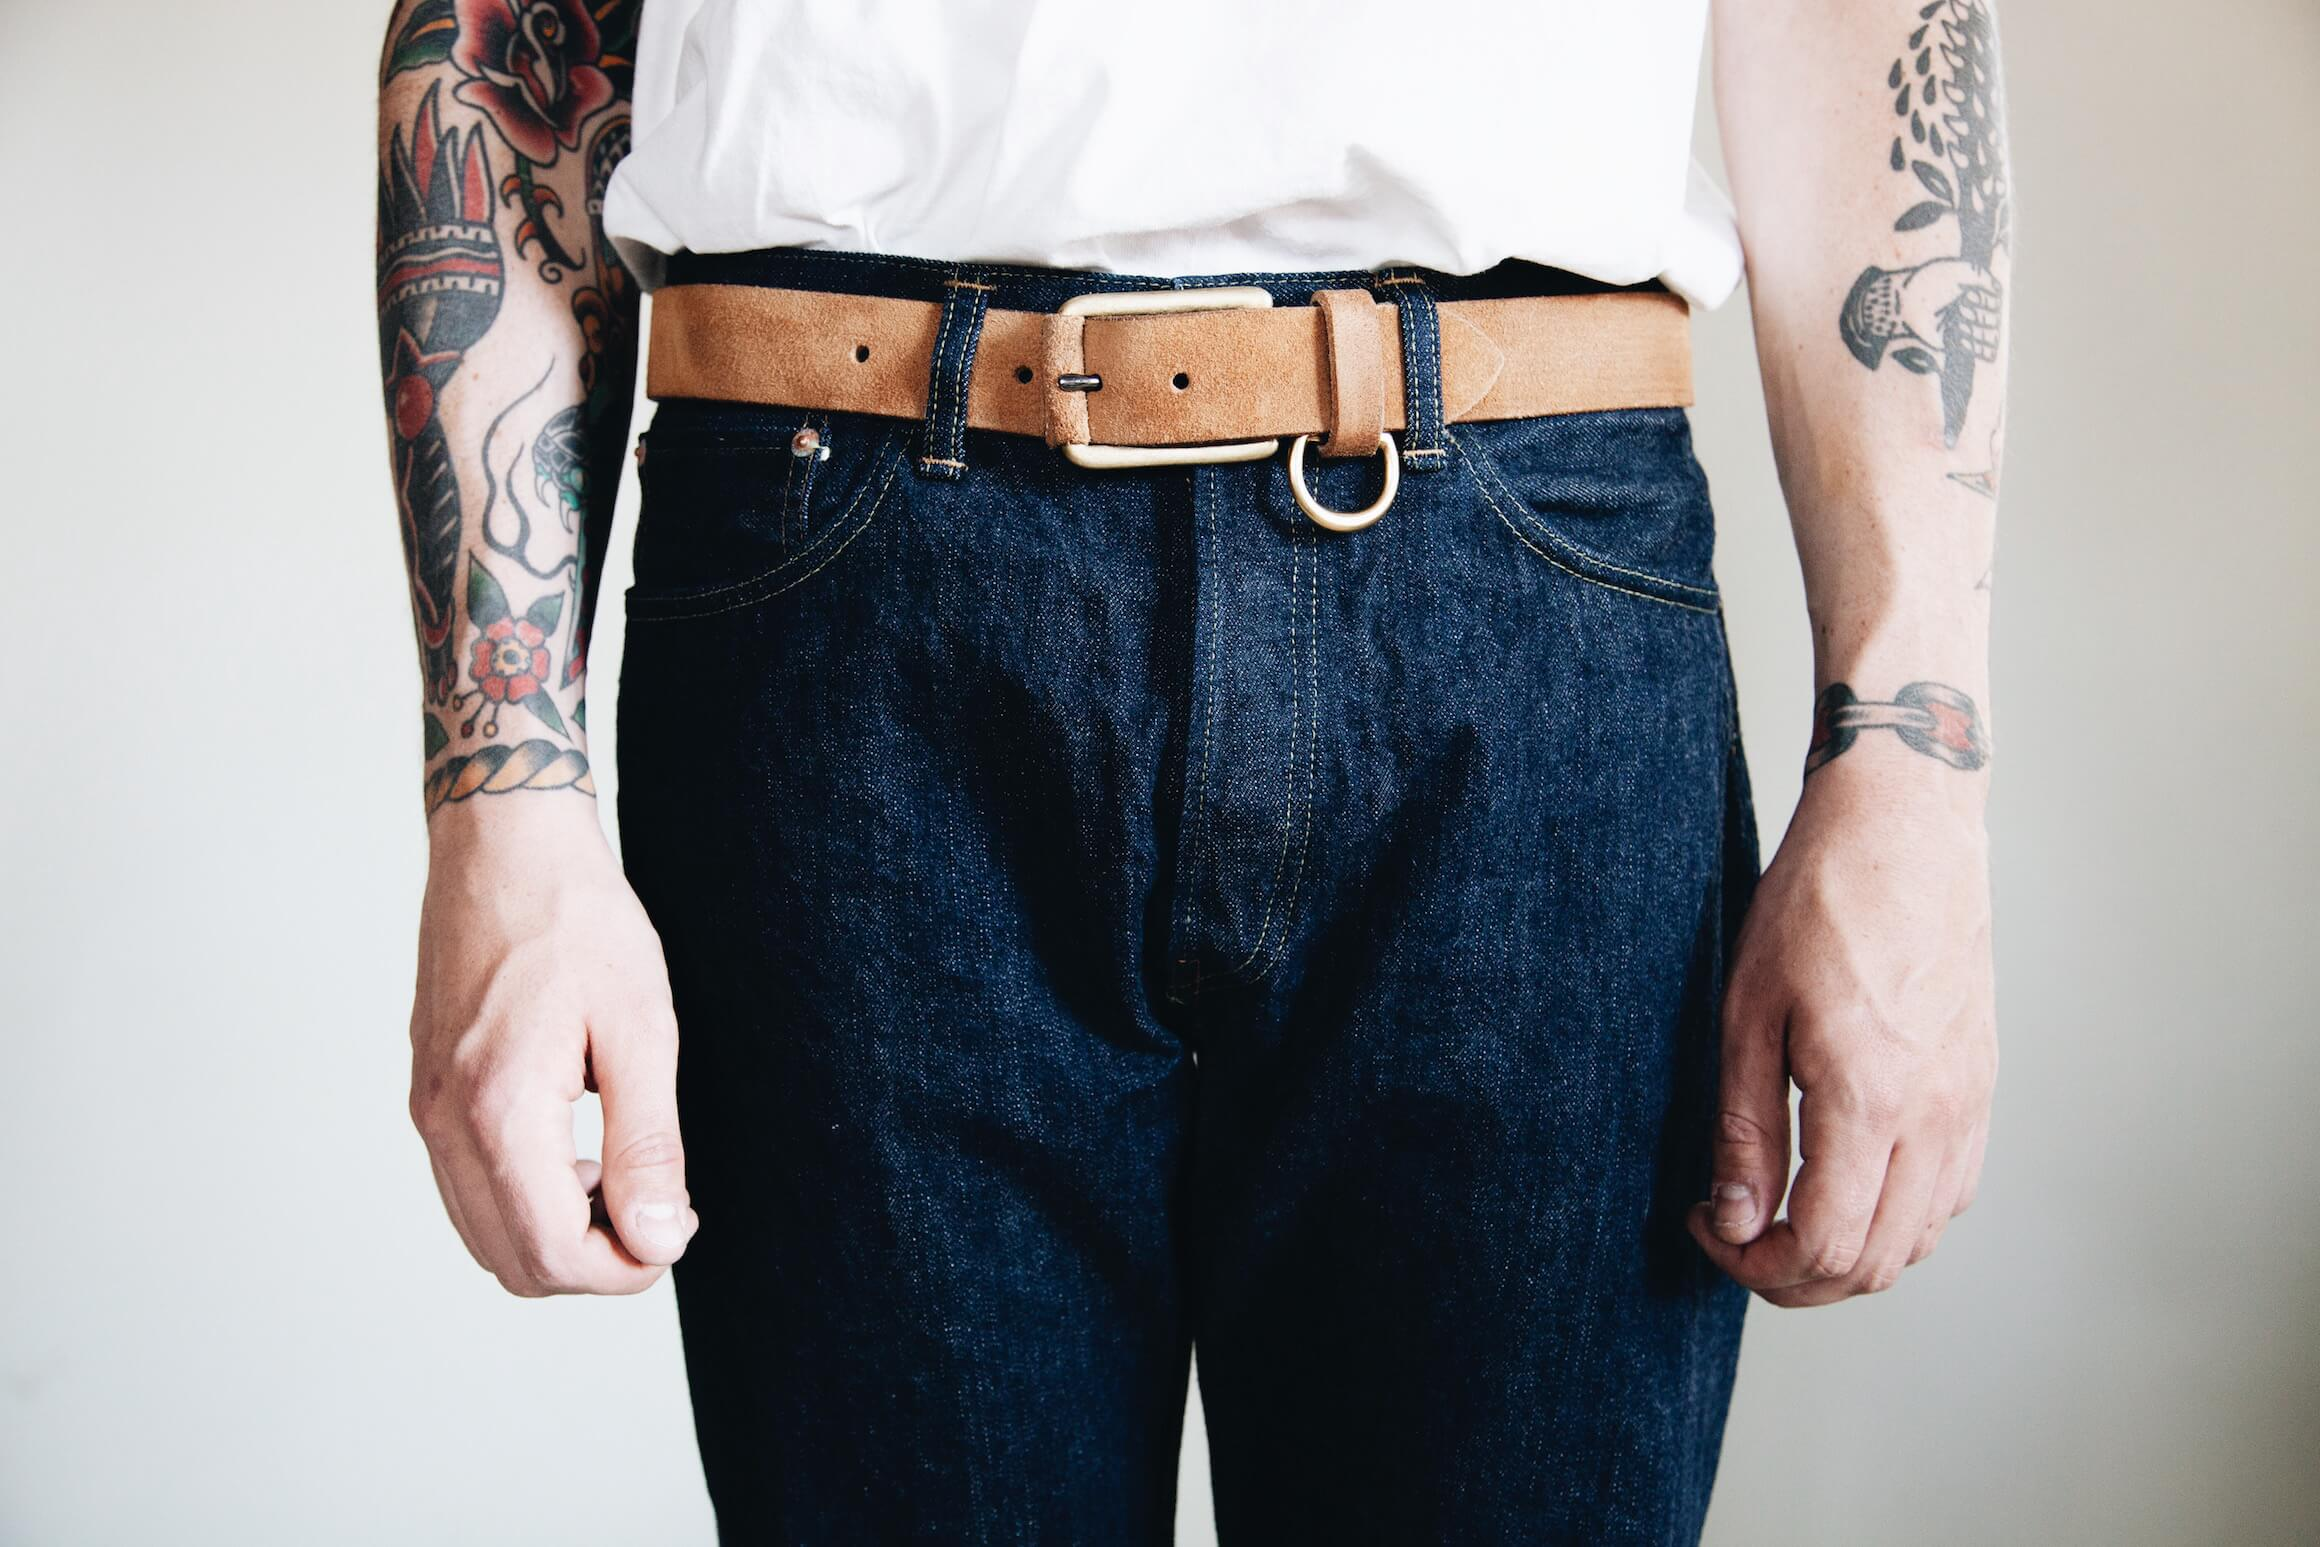 orSlow 105 Standard One Wash jeans with yuketen belt on body